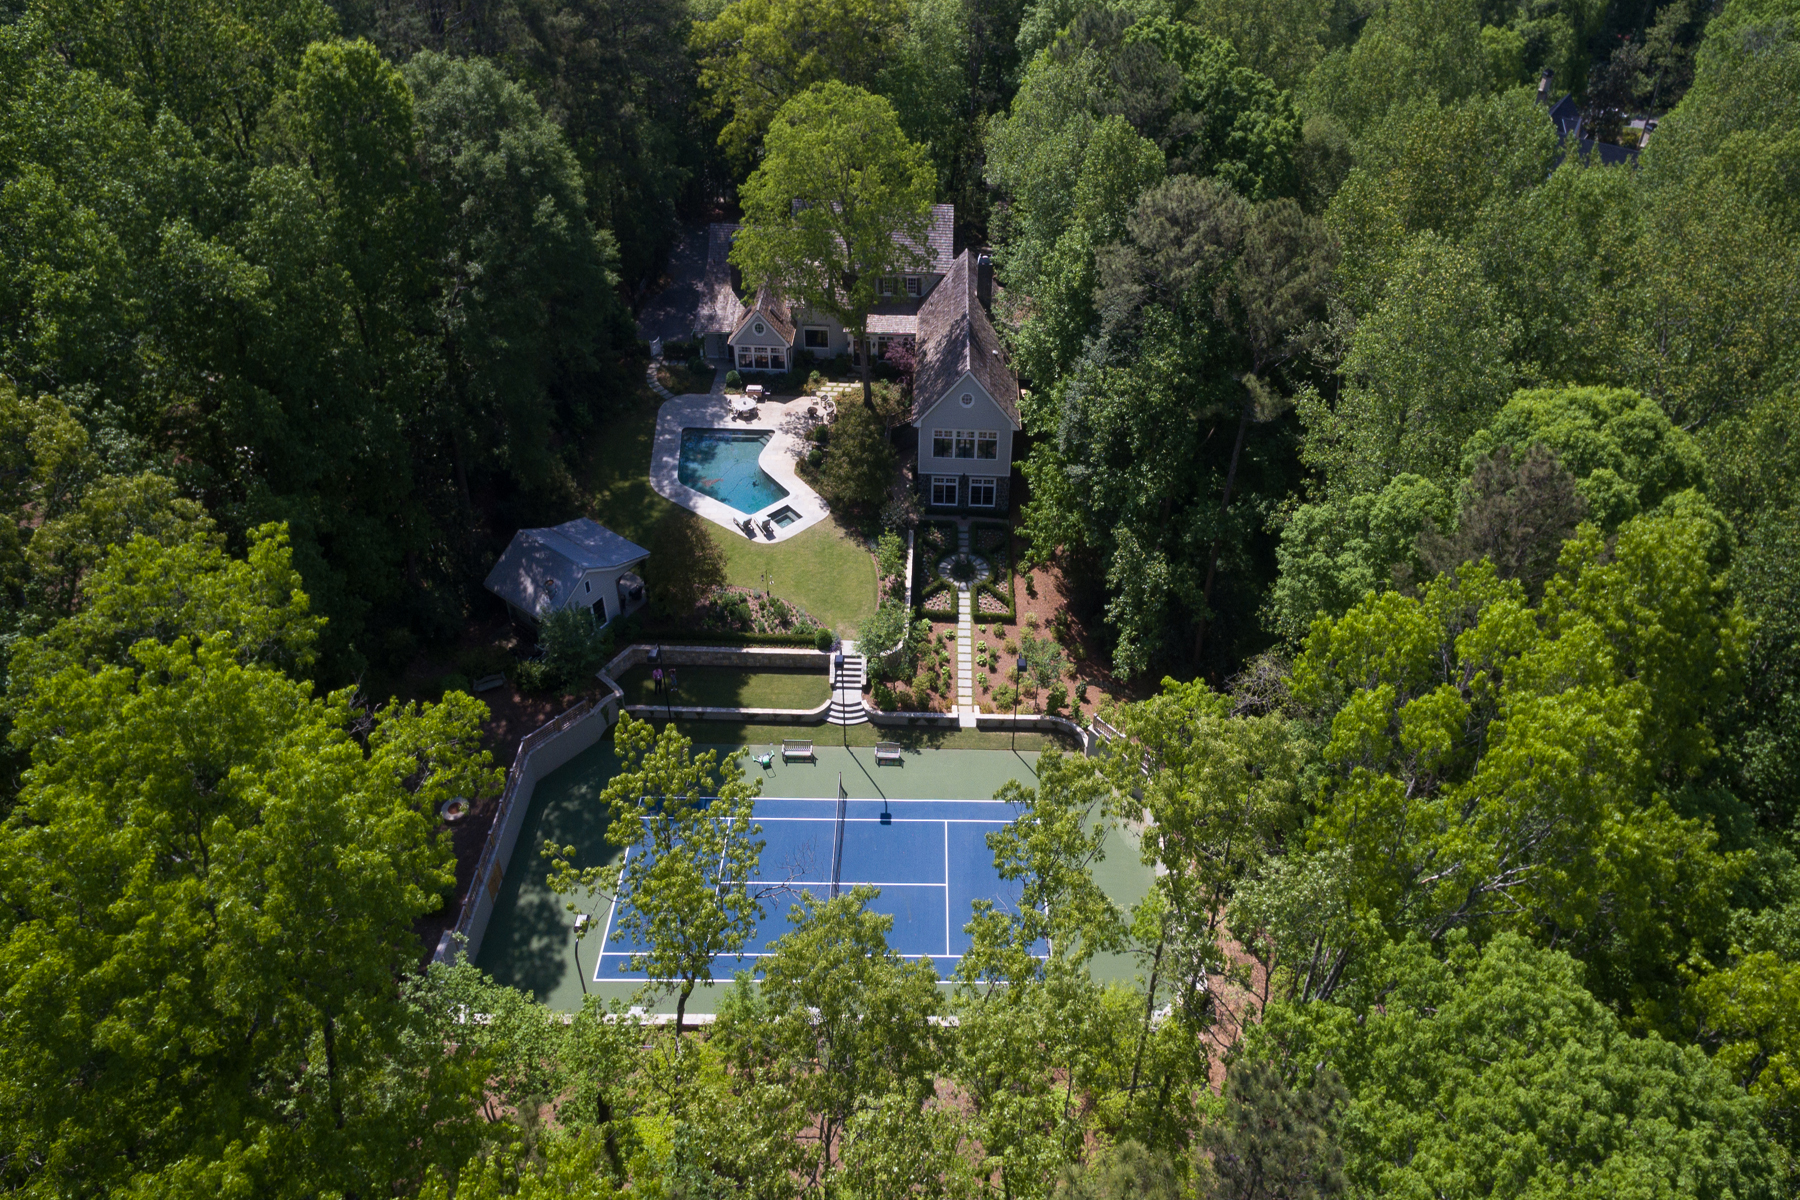 Частный односемейный дом для того Продажа на Amazing 4.86 Acre Estate Property With Lighted Tennis Court And Pool 4000 Conway Valley Road NW, Buckhead, Atlanta, Джорджия, 30327 Соединенные Штаты